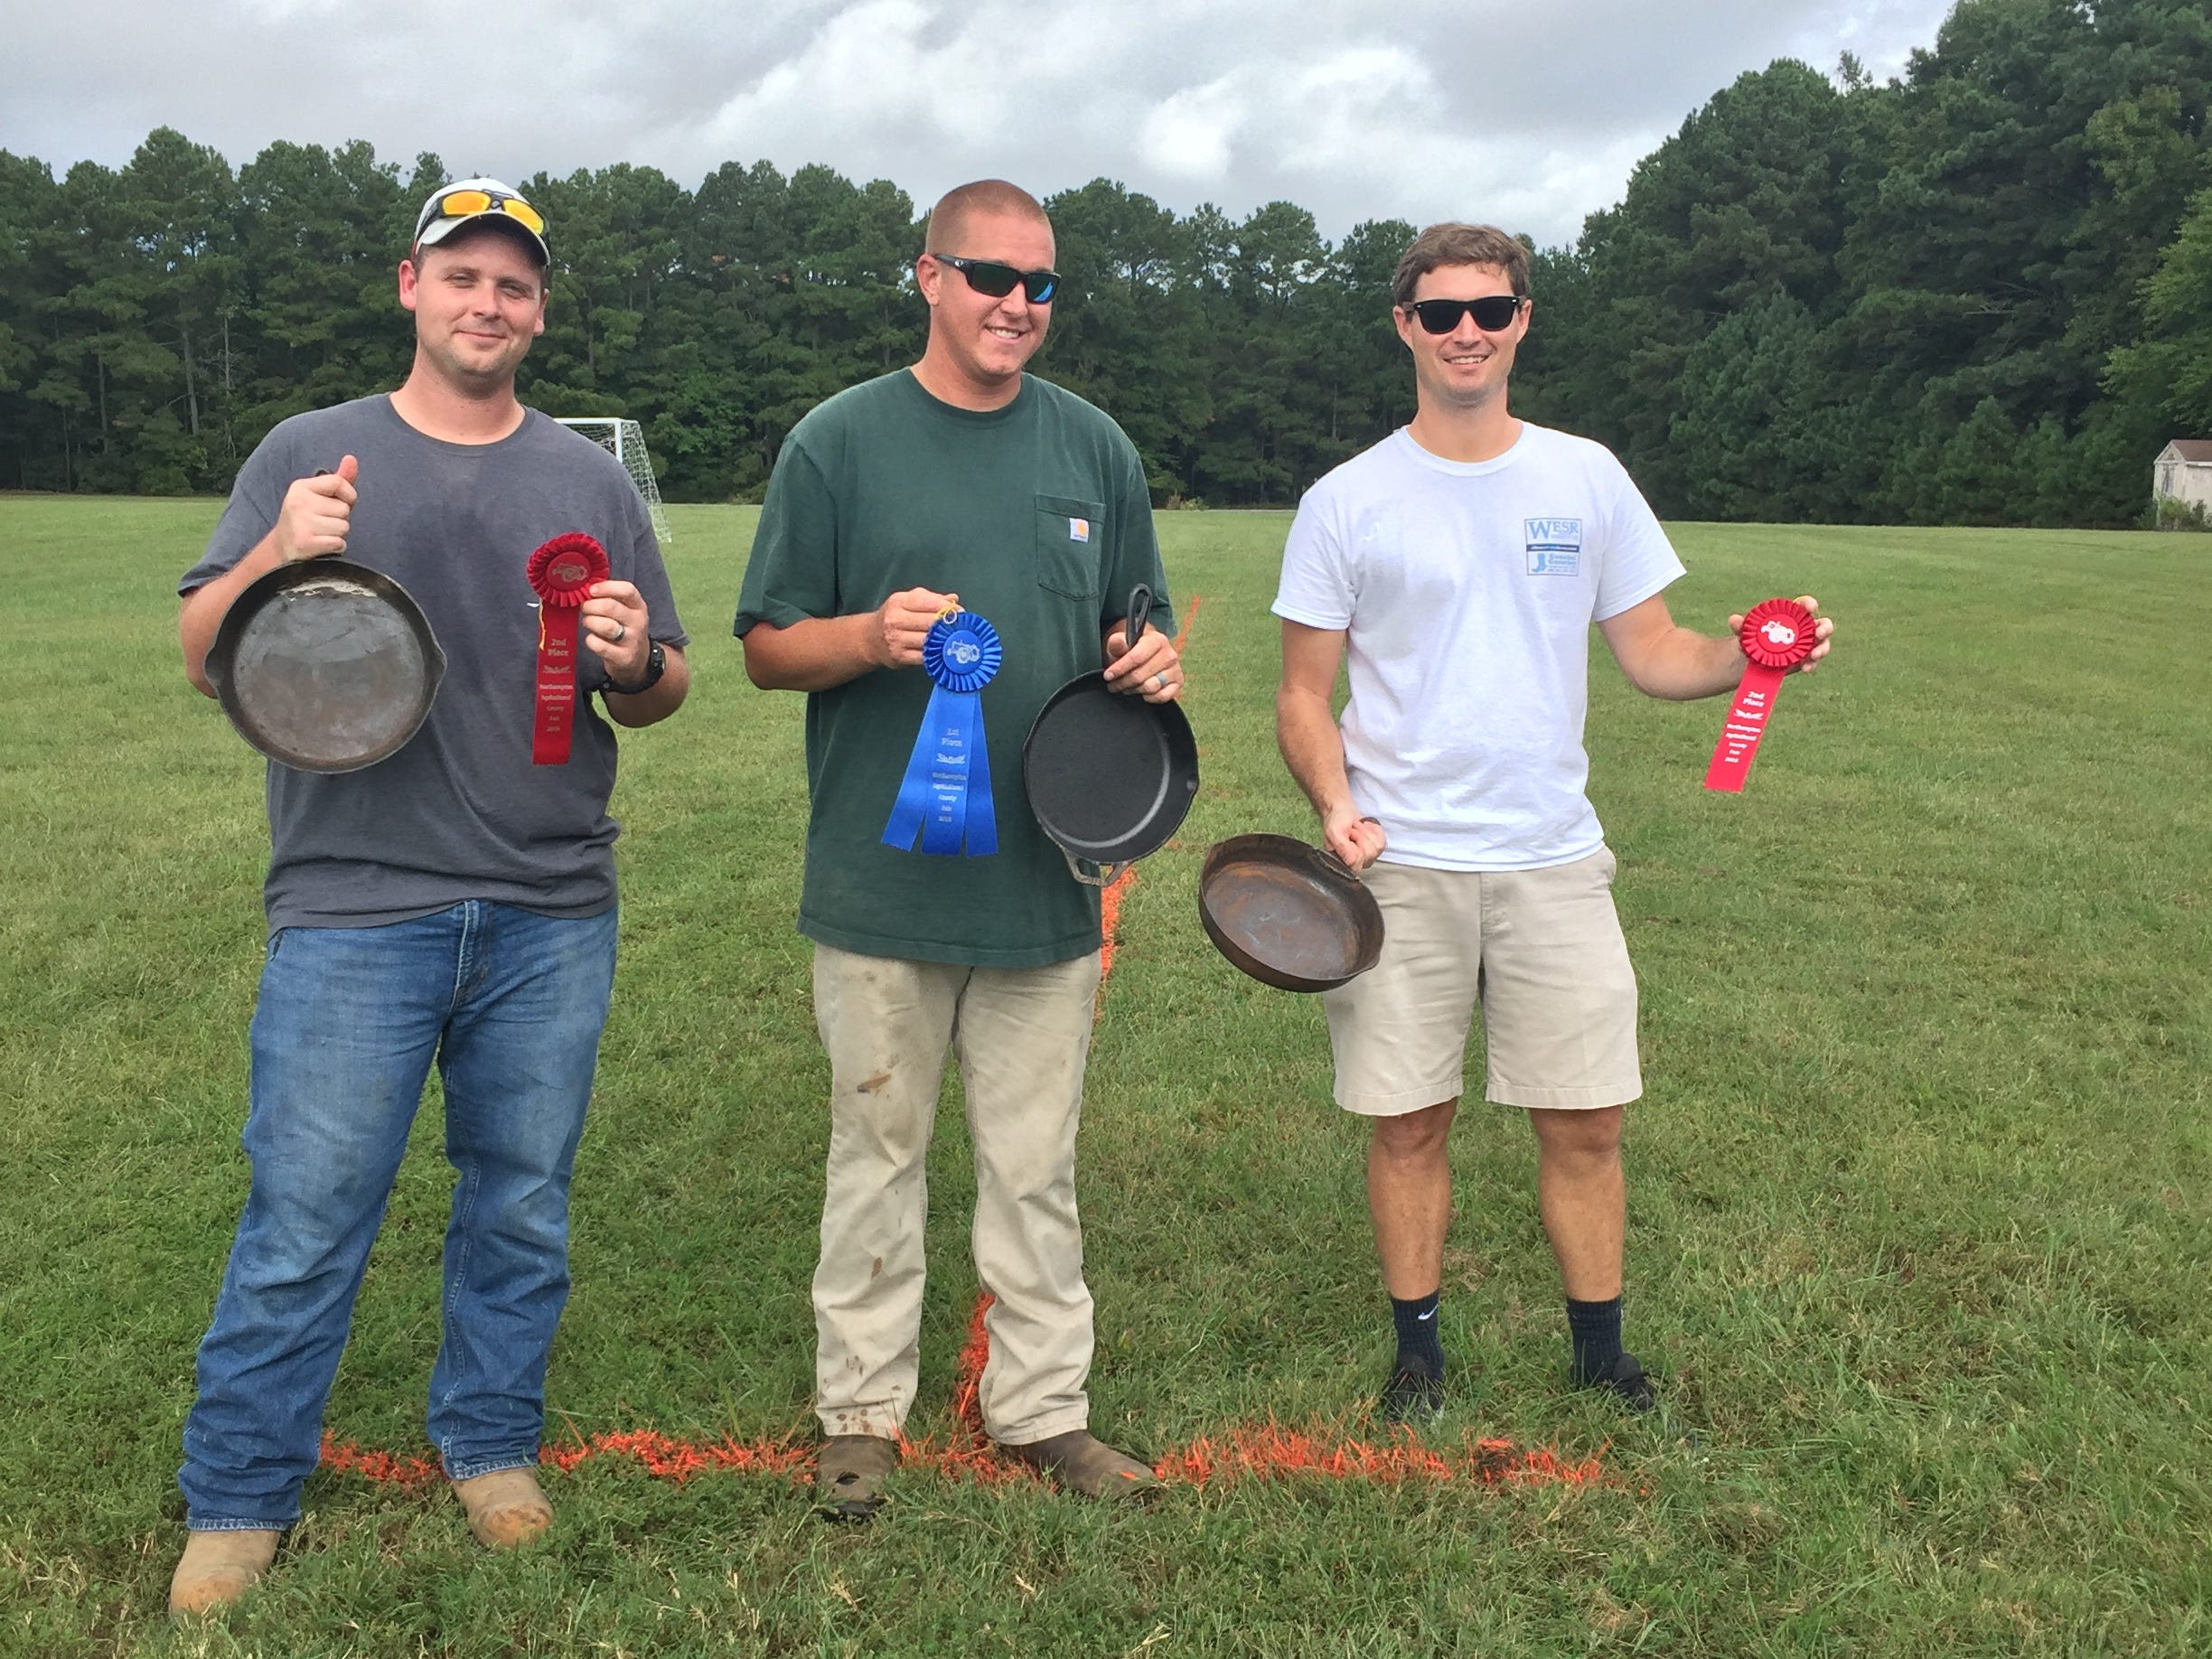 """Northampton Agricultural County Fair Skillet Throwing Contest Winners, men - 1st Place, center, Sands Gayle, with a 57'2"""" toss; tied for 2nd Place, from left, Brandon Parks and Will Russel,l with 51'3"""" tosses."""